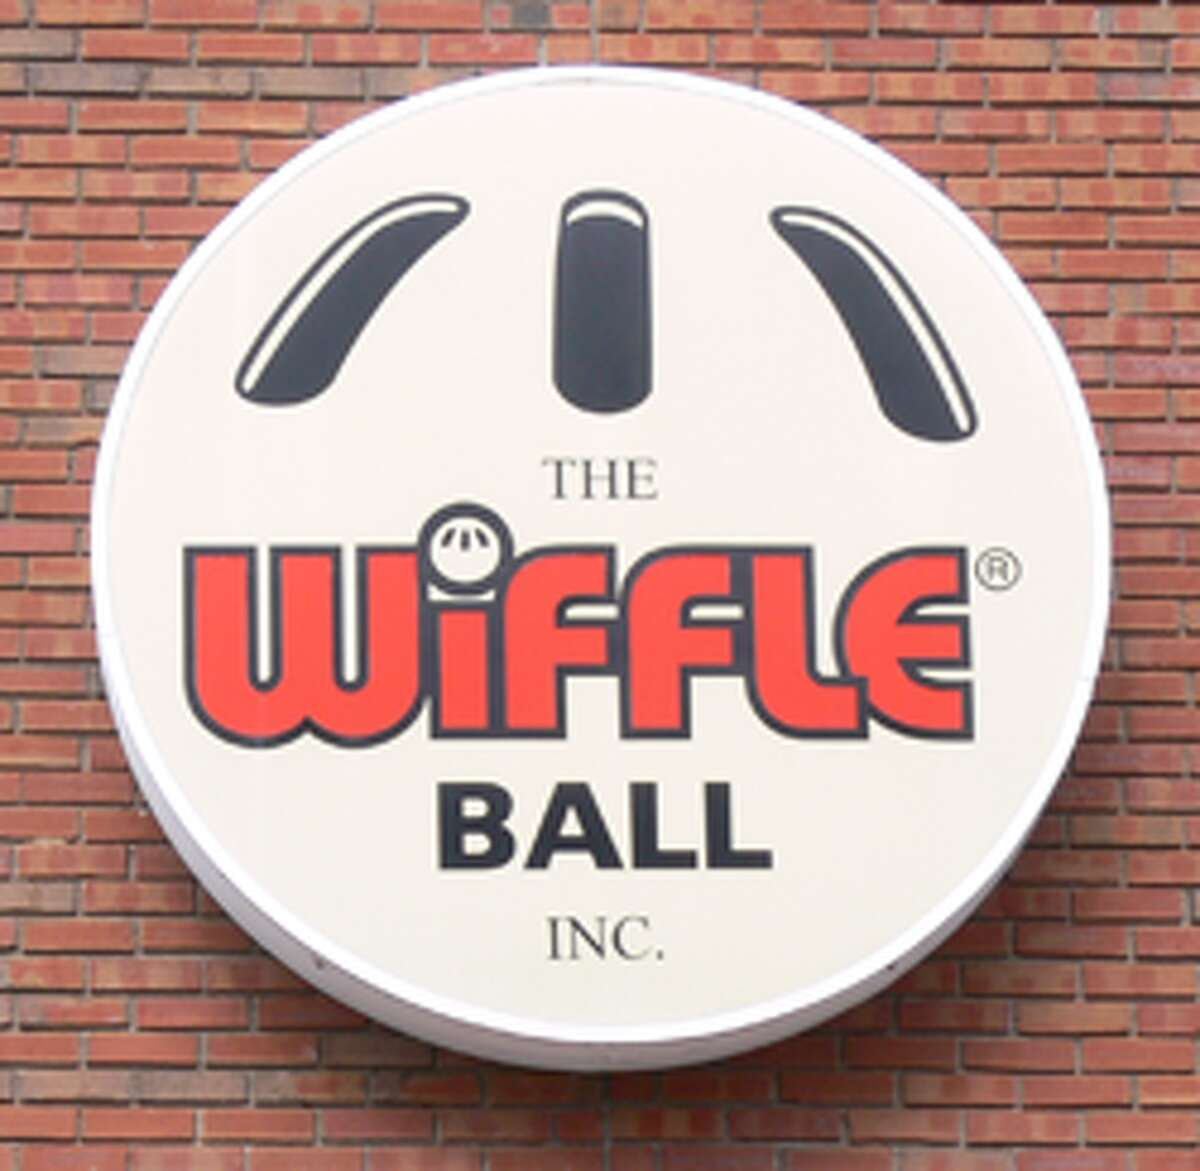 The Wiffle Ball logo on the company's Bridgeport Avenue factory.